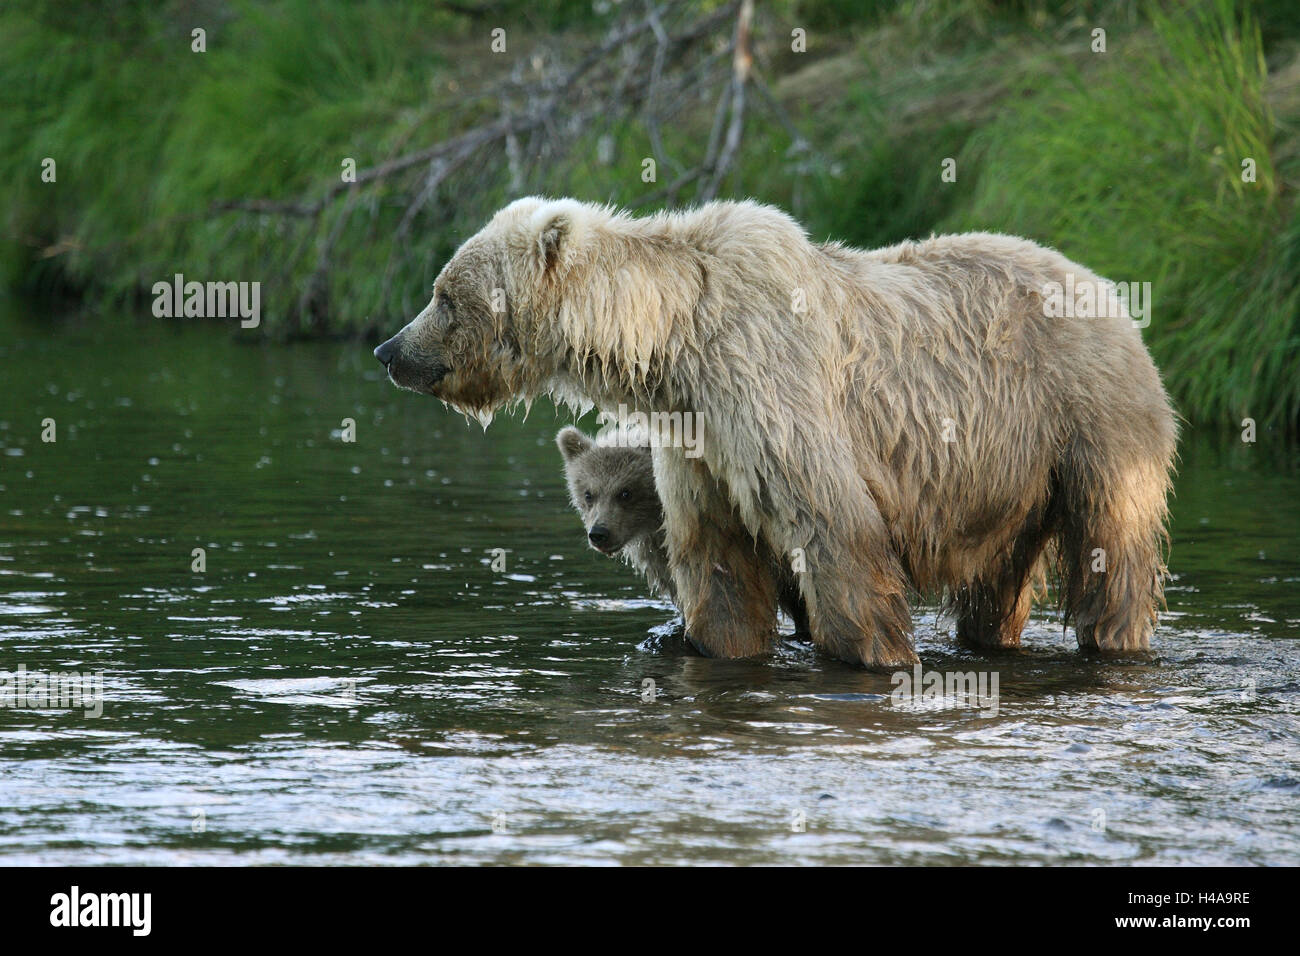 Grizzly bears, she-bear, young animal, water, - Stock Image